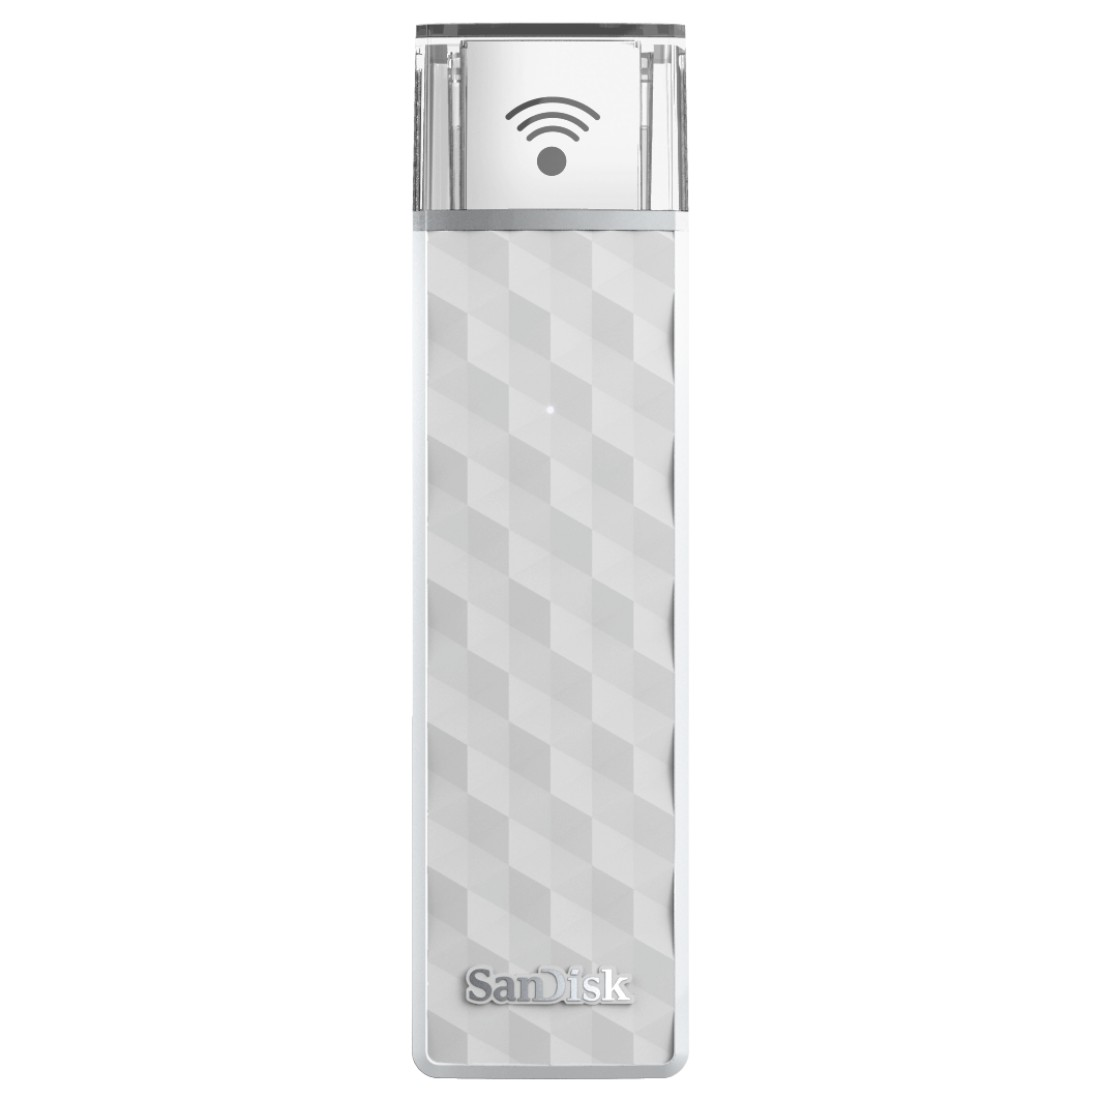 SanDisk Connect Wireless Stick 256GB bílá